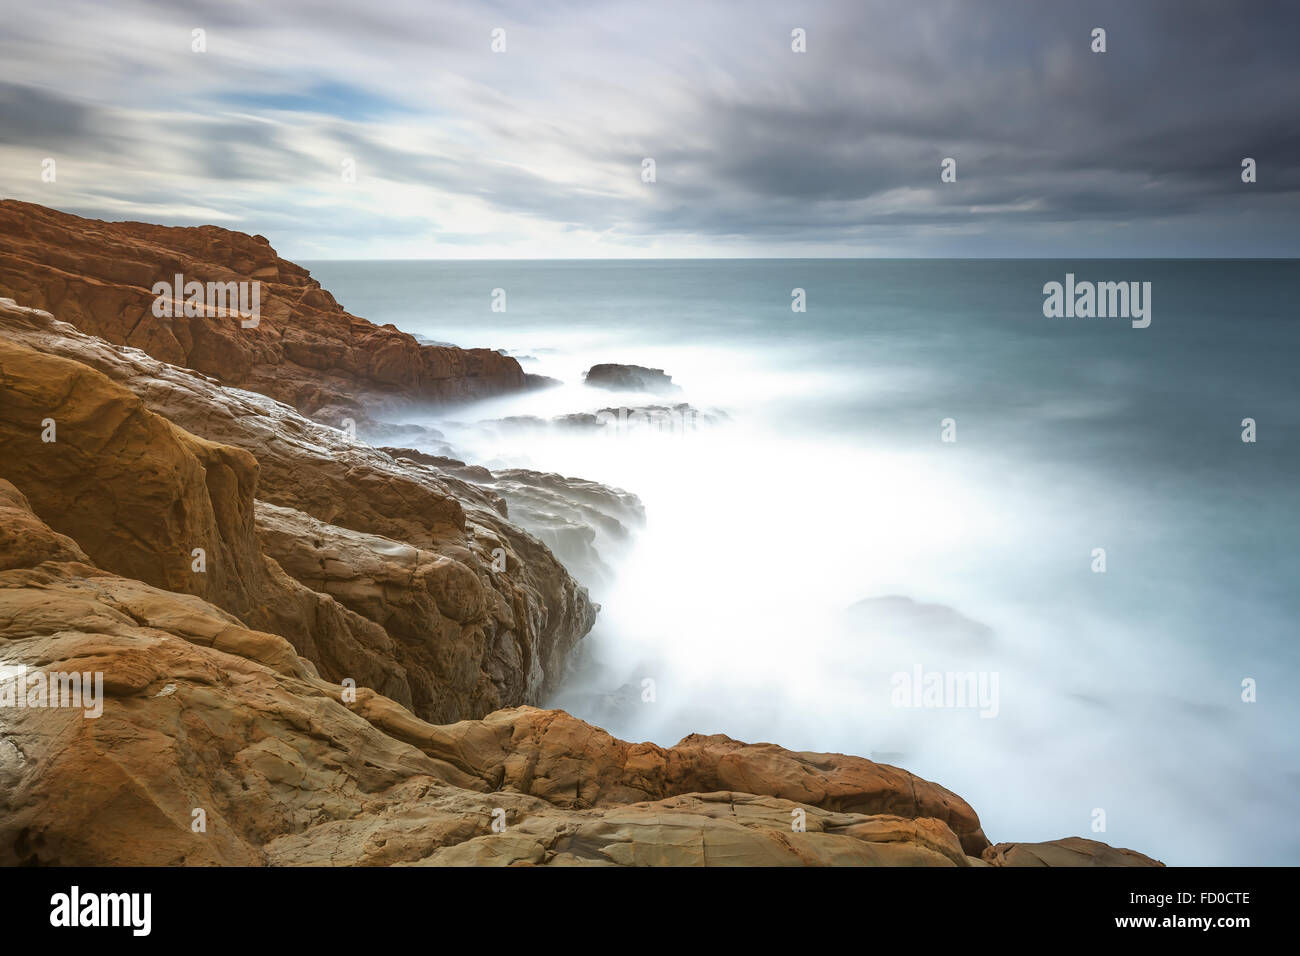 Dark red rocks, waves and foam, ocean under cloudy sky in a bad weather. Long exposure photography. Livorno, Tuscany, - Stock Image